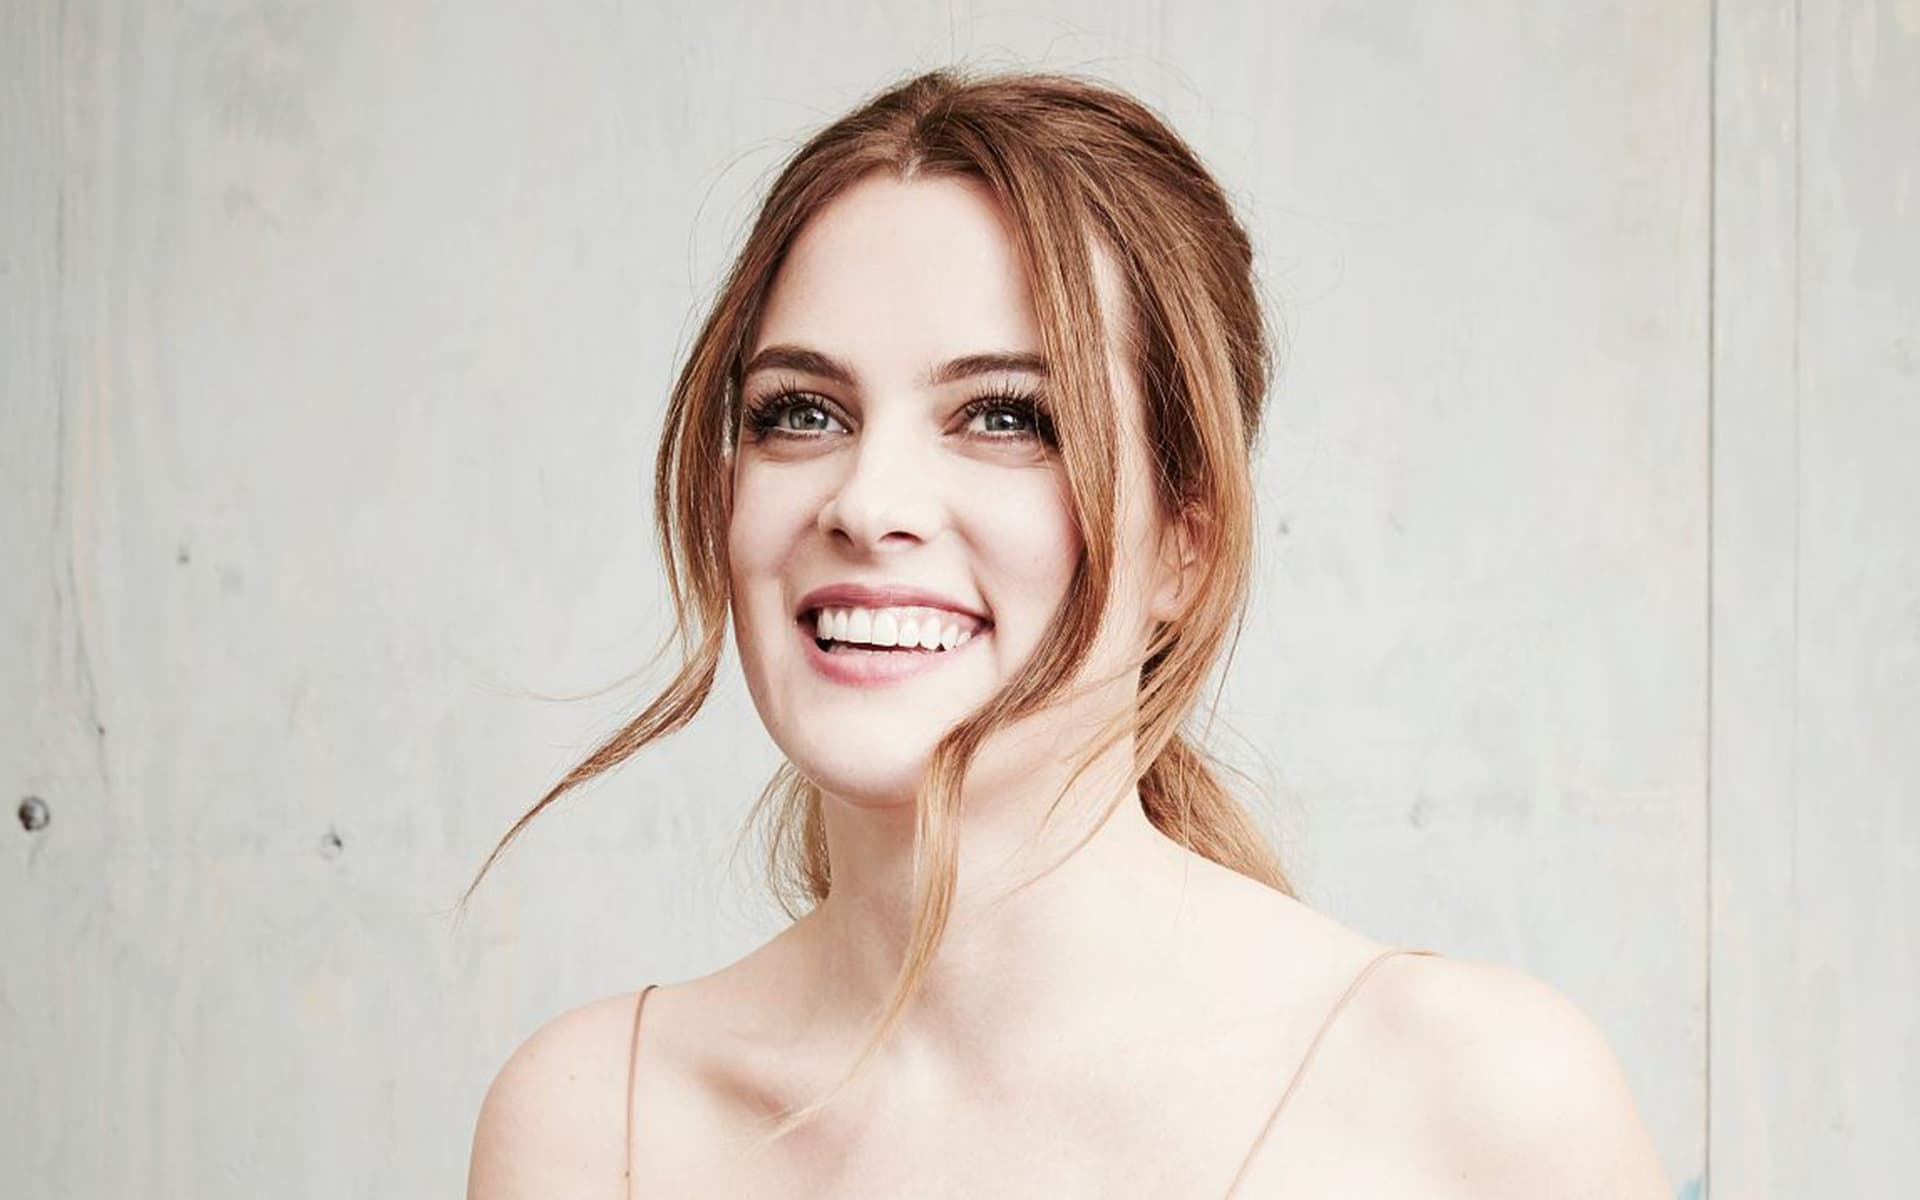 smiling Riley Keough Elvis Presley's granddaughter wallpaper 1080p High Definition